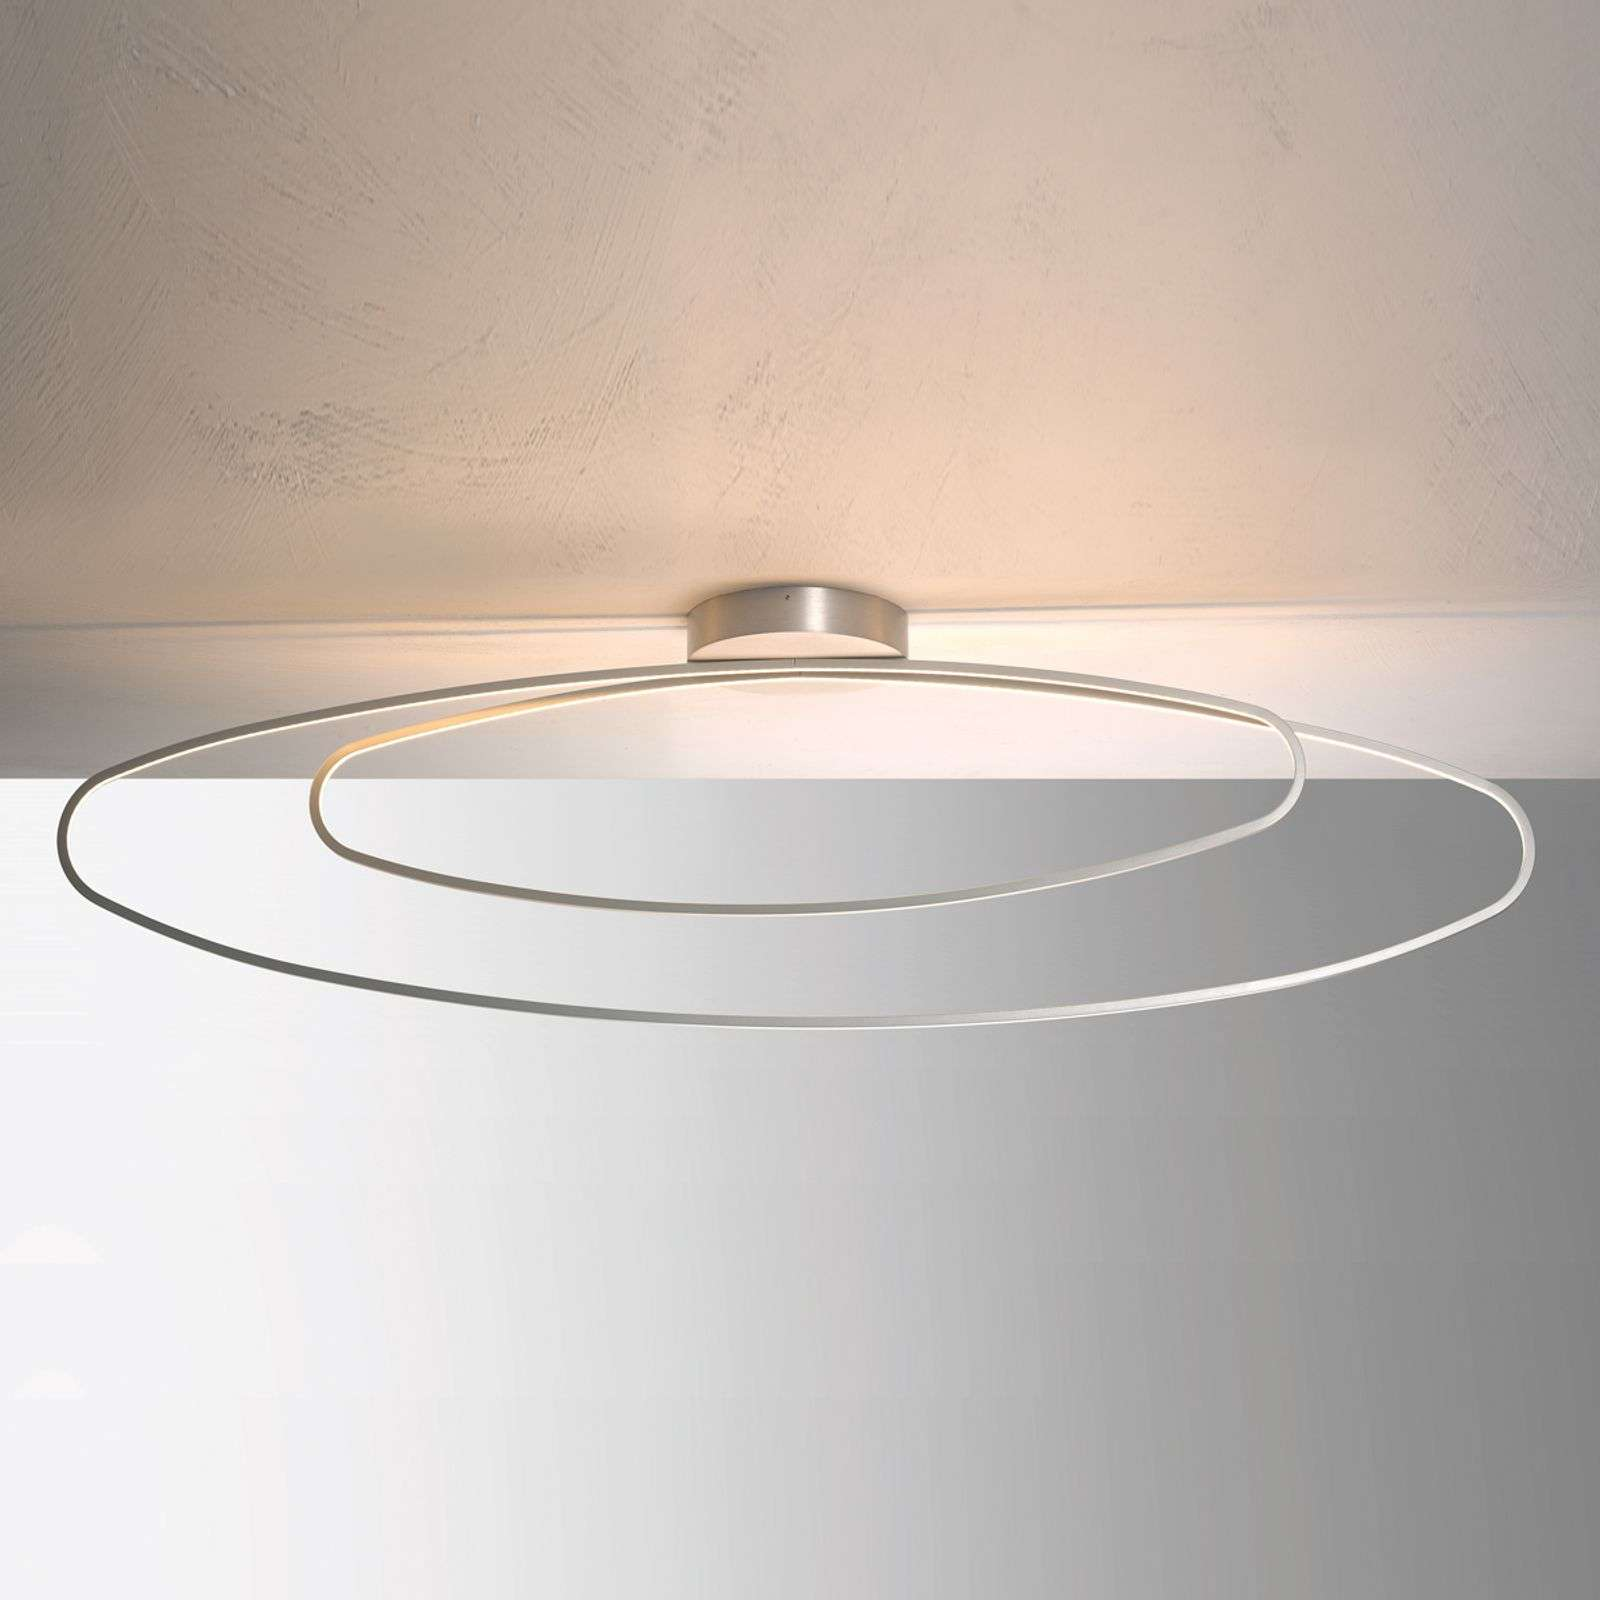 Plafonnier LED Slight filigrane, alu